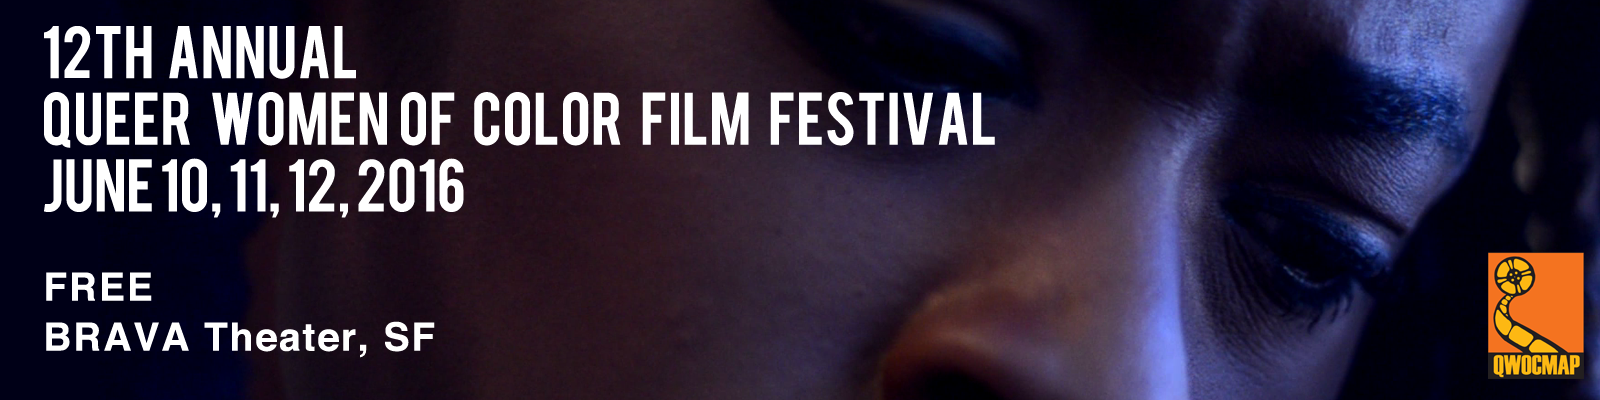 12th Queer Women of Color Film Festival 2016